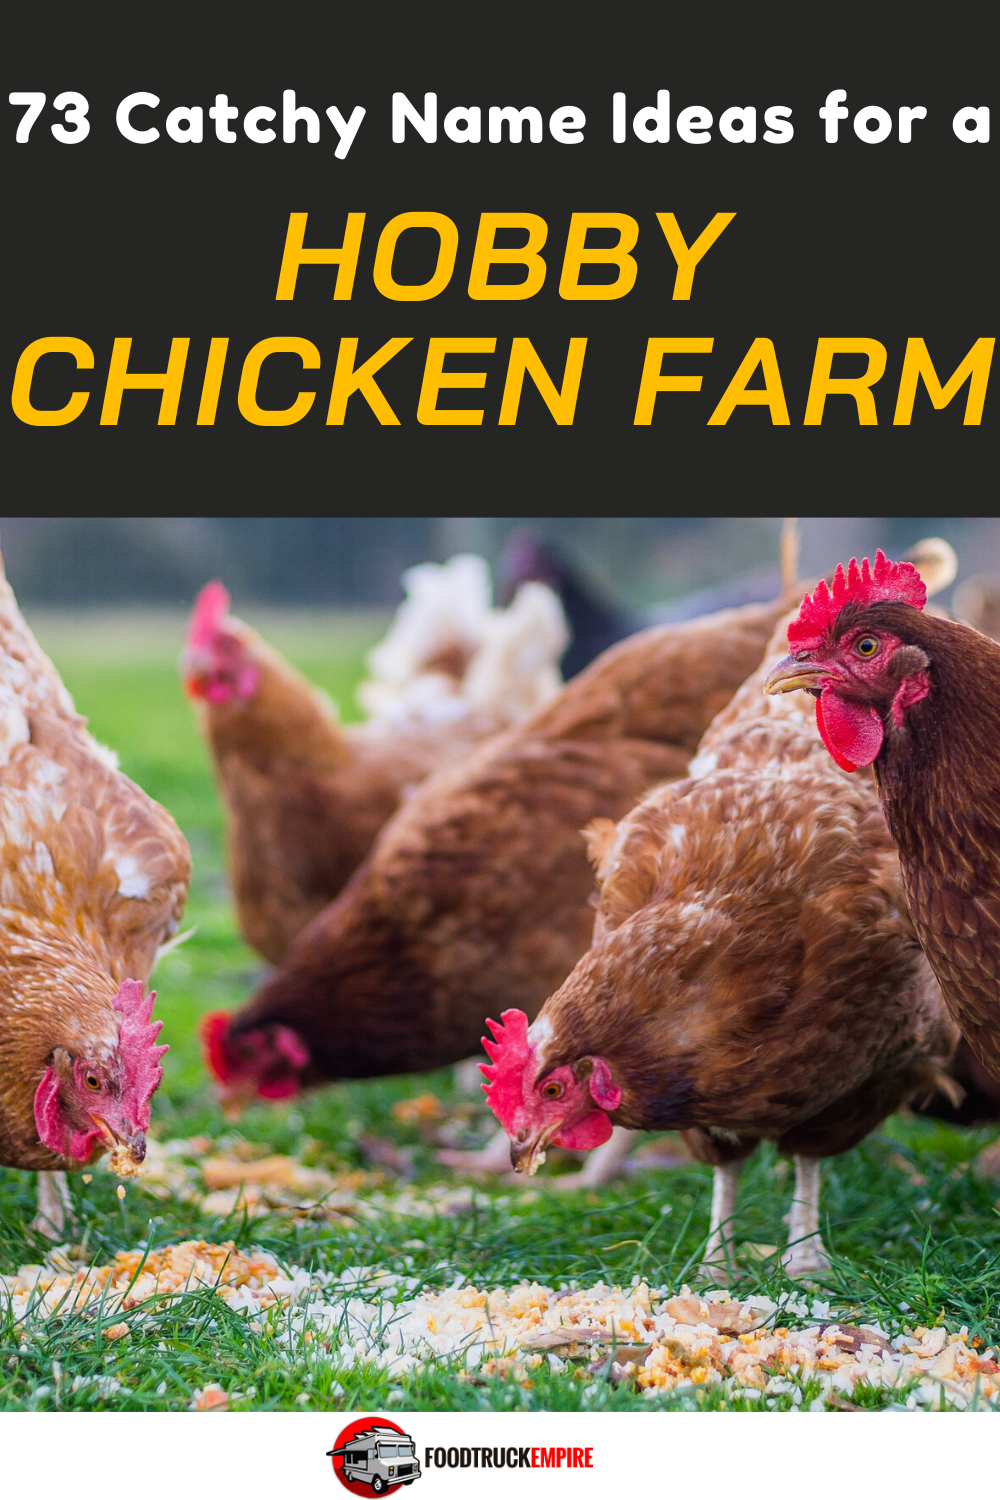 73 Catchy Name Ideas for a Hobby Chicken Farm